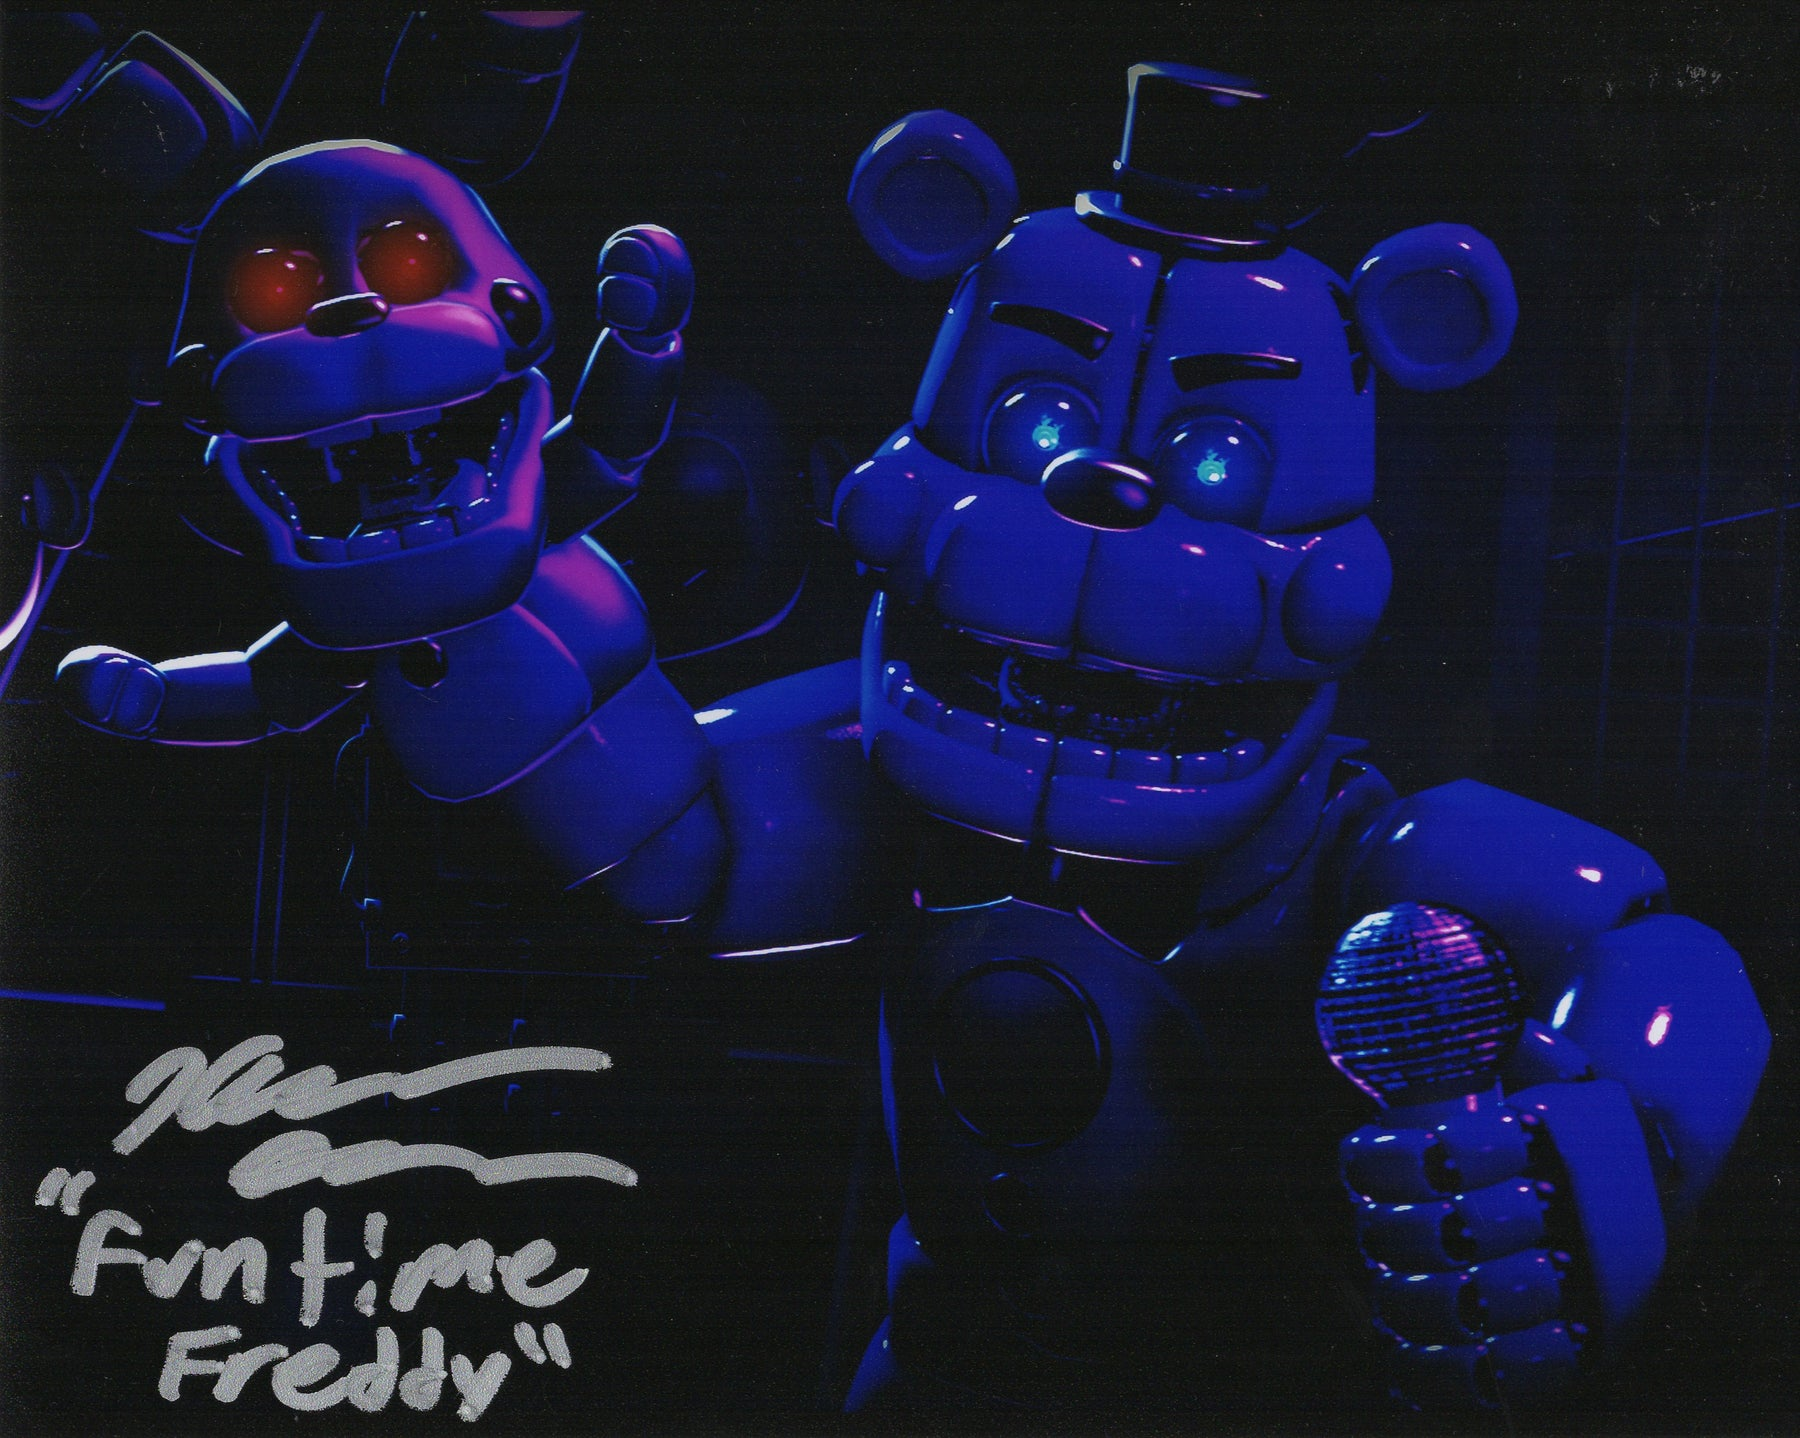 Kellen Goff Signed 8x10 Photo Five Nights at Funtime Freddy's COA H5